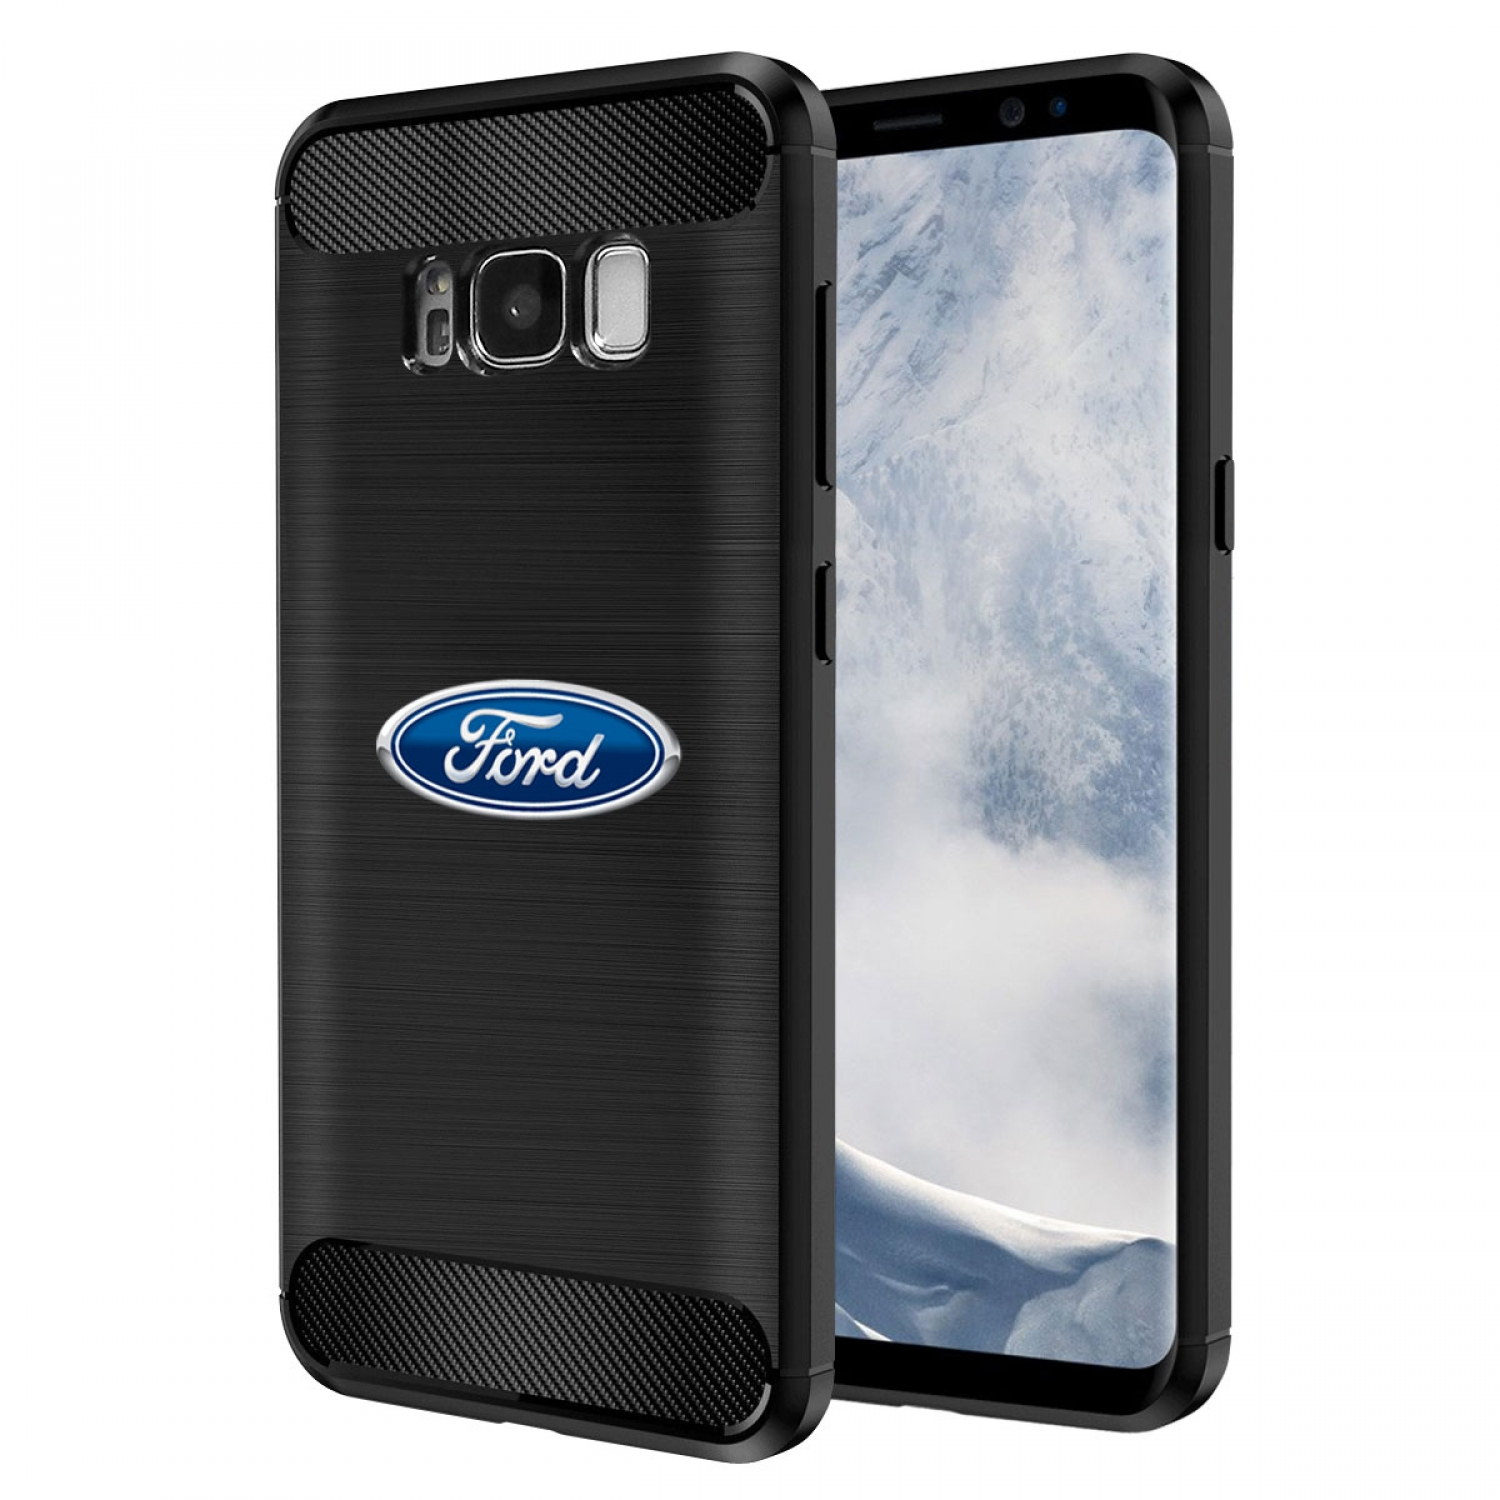 Galaxy S8 Case, Ford Oval Logo TPU Shockproof Black Carbon Fiber Textures Stripes Cell Phone Case